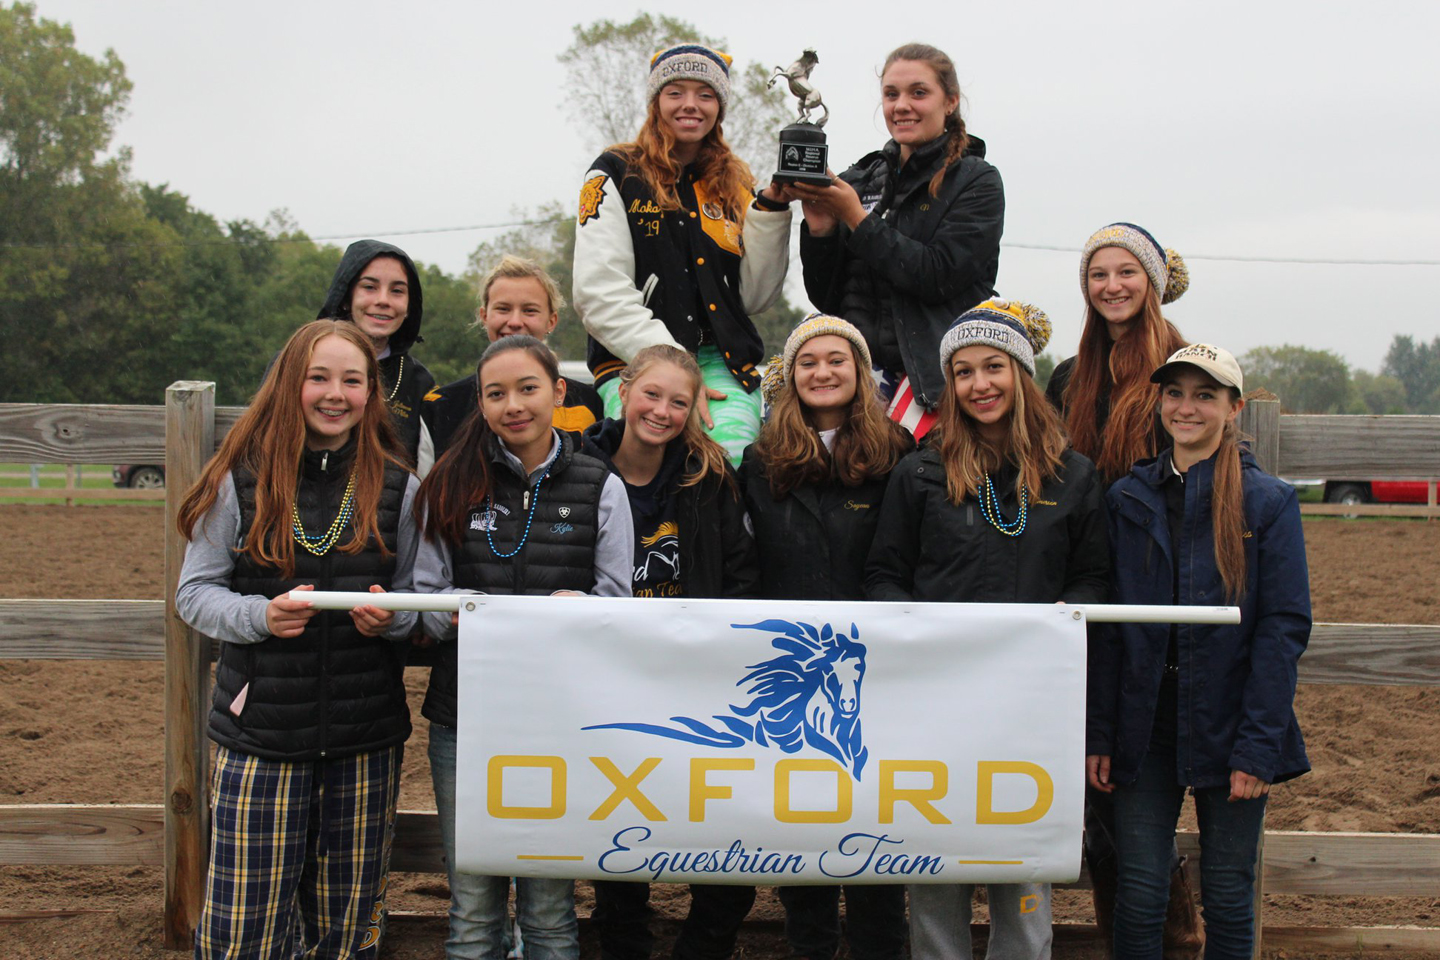 Oxford's equestrian team poses with its trophy. Photo provided.